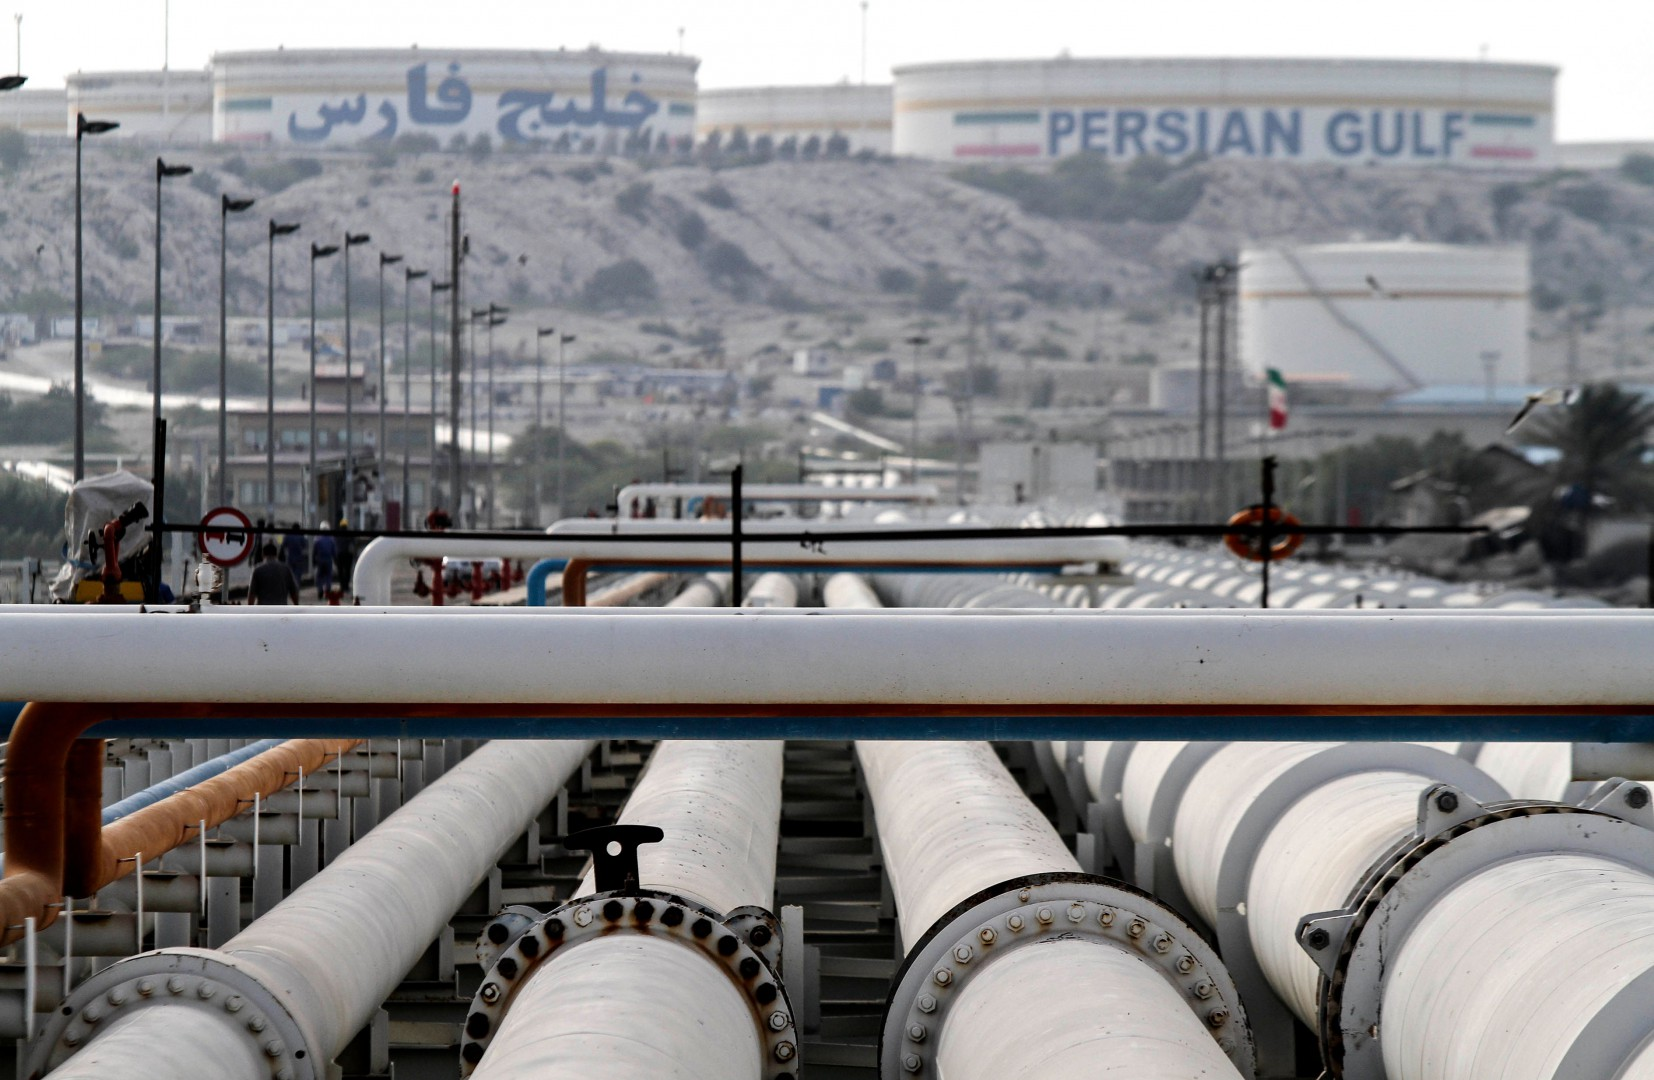 (FILES) In this file photo taken on February 23, 2016 A picture shows export oil pipelines at an oil facility in the Khark Island, on the shore of the Gulf, on February 23, 2016. - OPEC members and other oil-producing countries convene in Vienna this week December 2018 to discuss cutting their output targets, torn between plunging oil prices and pressure from the United States to keep prices low.  Under the watchful eye of major producers such as Saudia Arabia and Russia, delegates from both the Organization of Petroleum Exporting Countries and around 10 other non-OPEC members -- which together account for more than half of total global output -- will first hold preparatory meetings earlier in the week and then full plenary sessions on Thursday and Friday. (Photo by - / AFP)